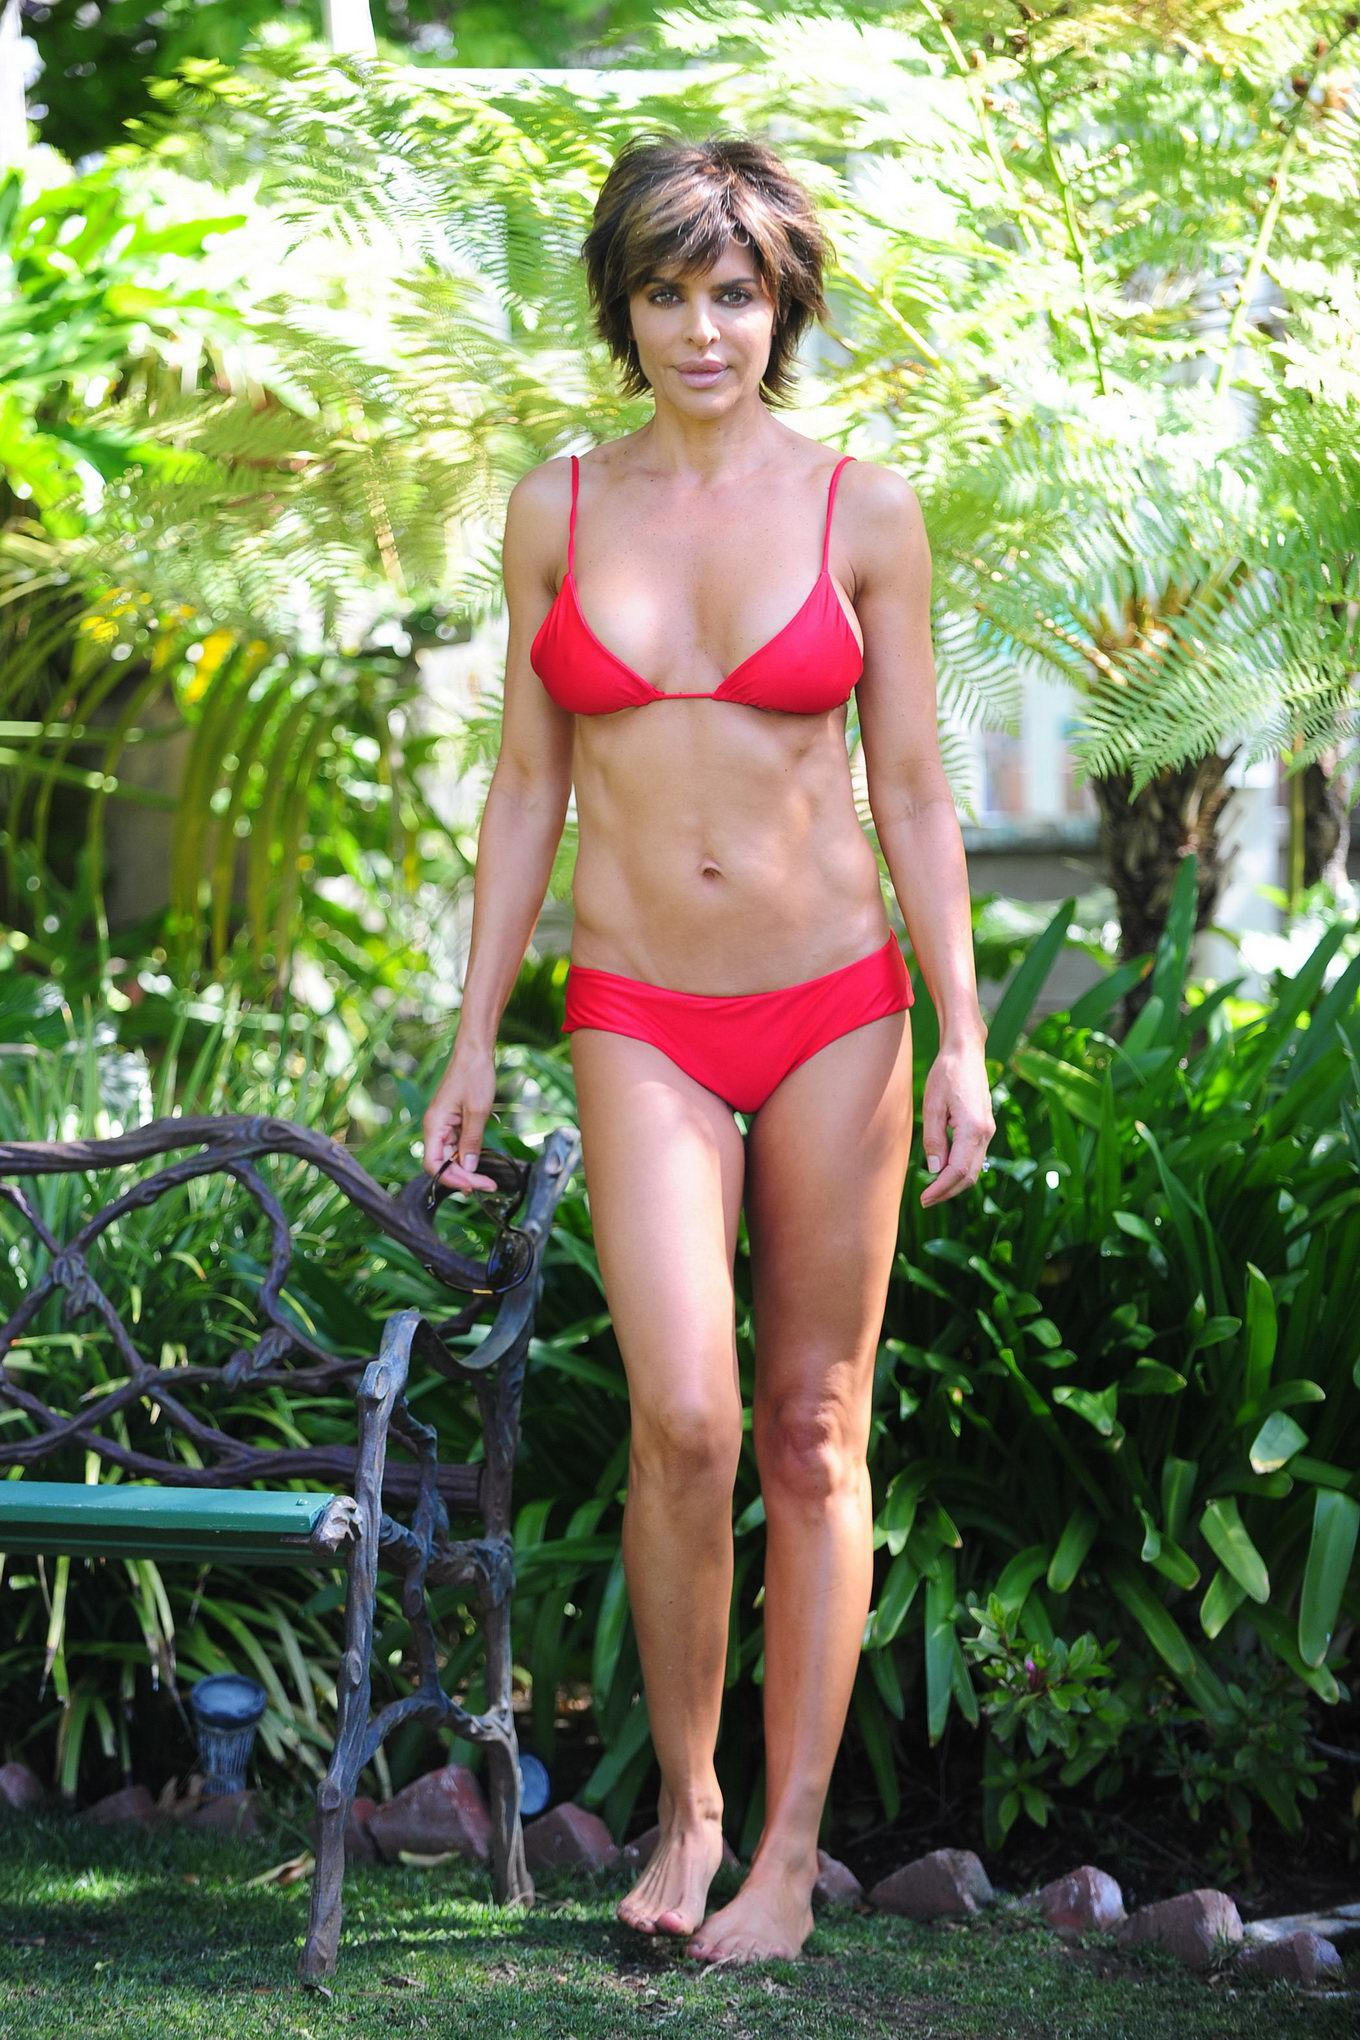 Lisa Rinna Nude Pictures Images | Crazy Gallery